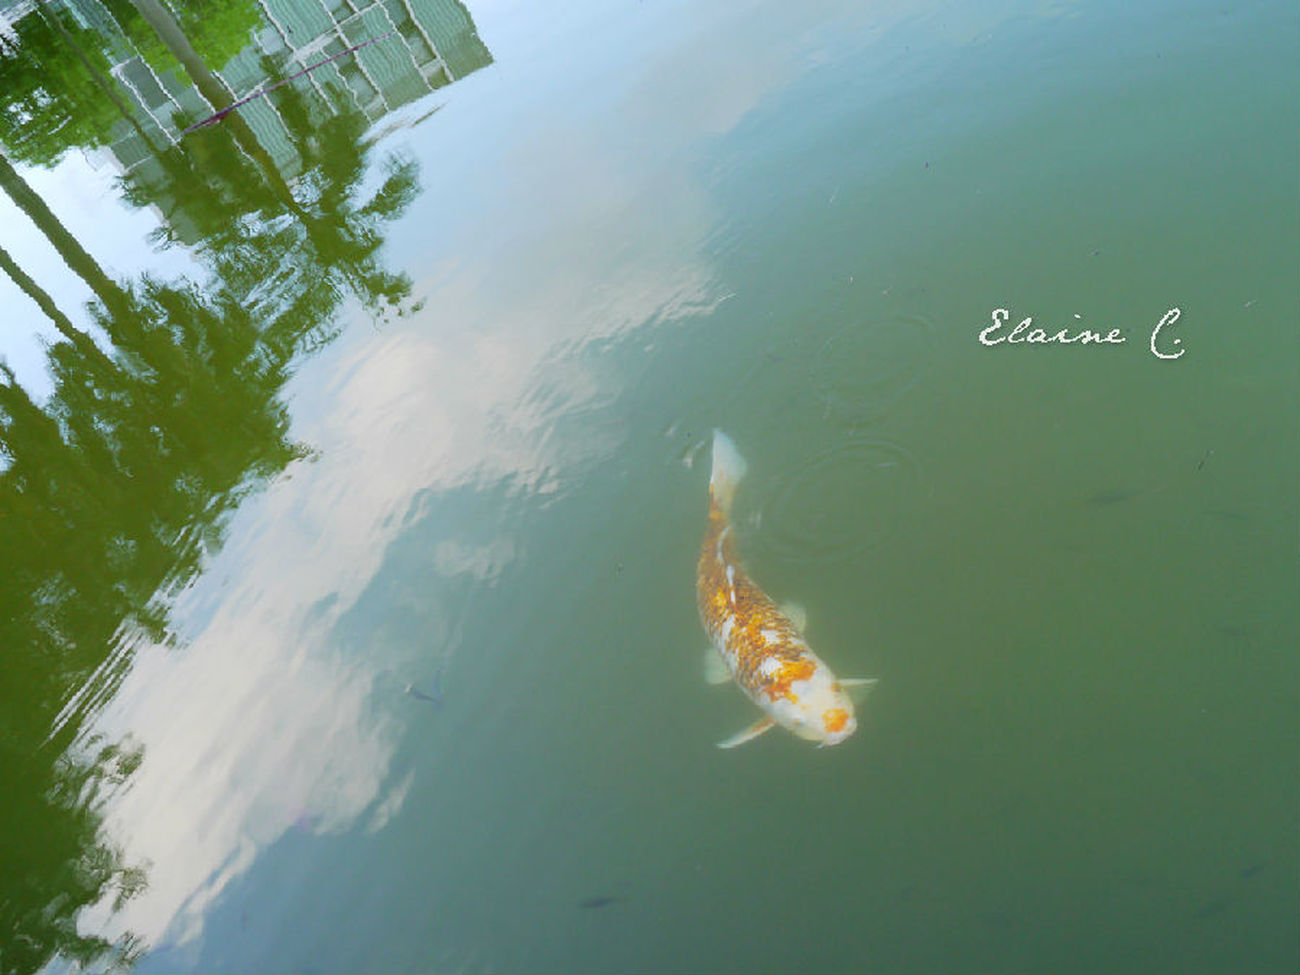 Art Photograph Taking Photos Szu fish in sky